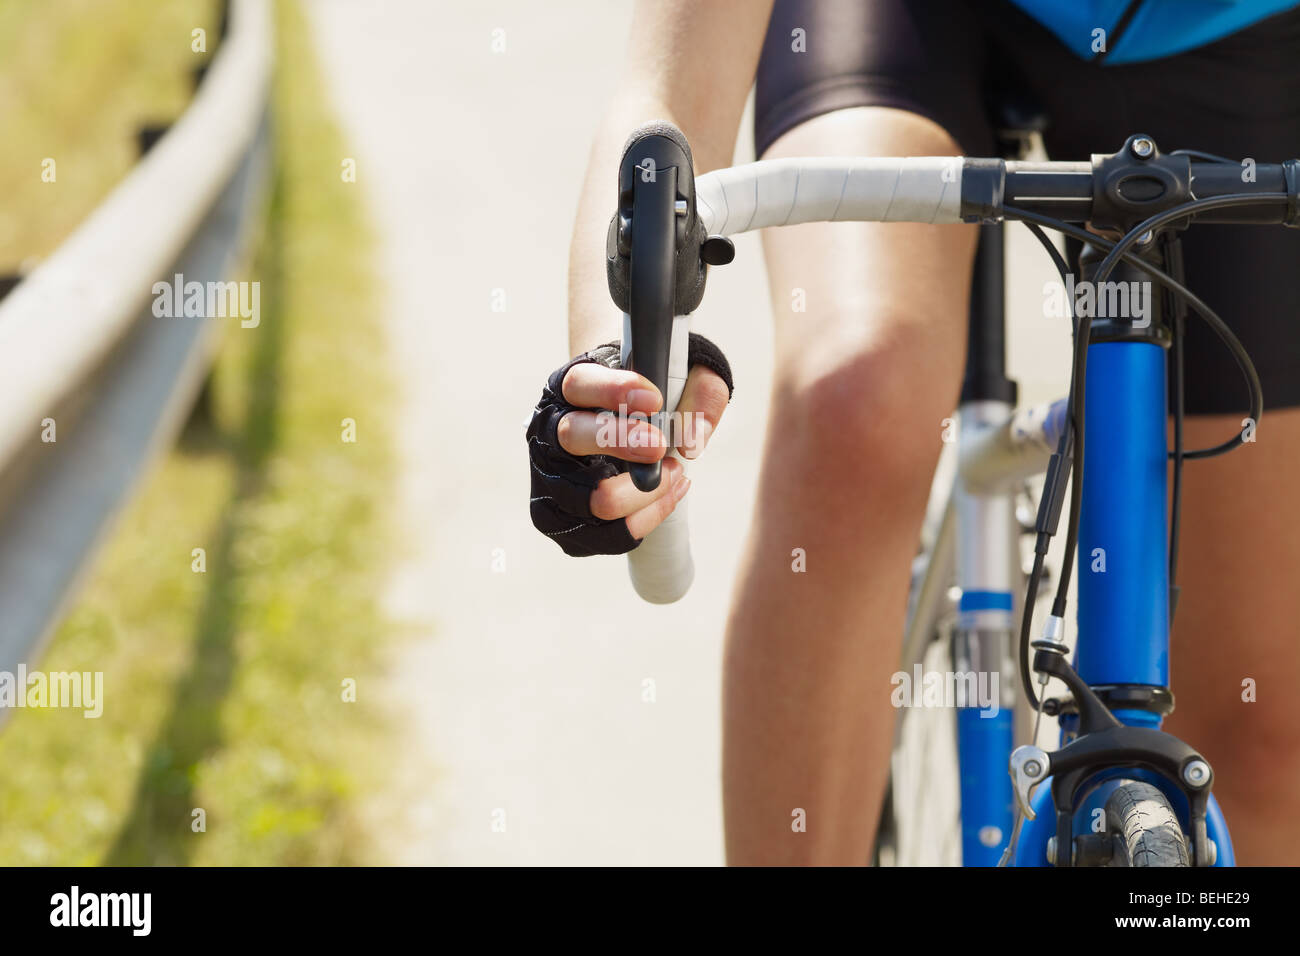 Cropped view of female cyclist with hands on brakes. Copy space - Stock Image